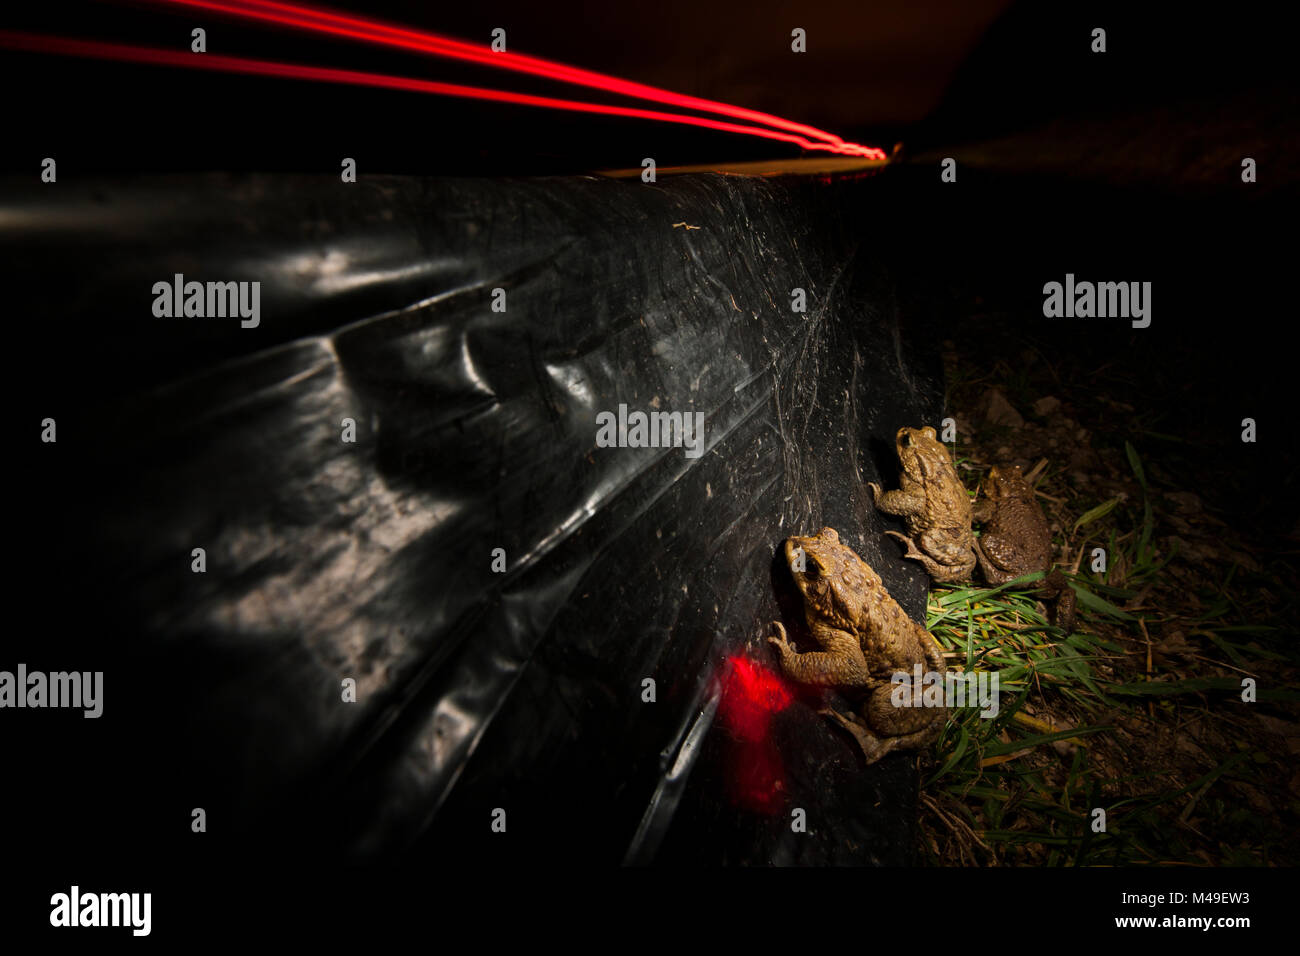 Three European toads (Bufo bufo) moving along a barrier towards an underpass to prevent roadkill during migration, - Stock Image